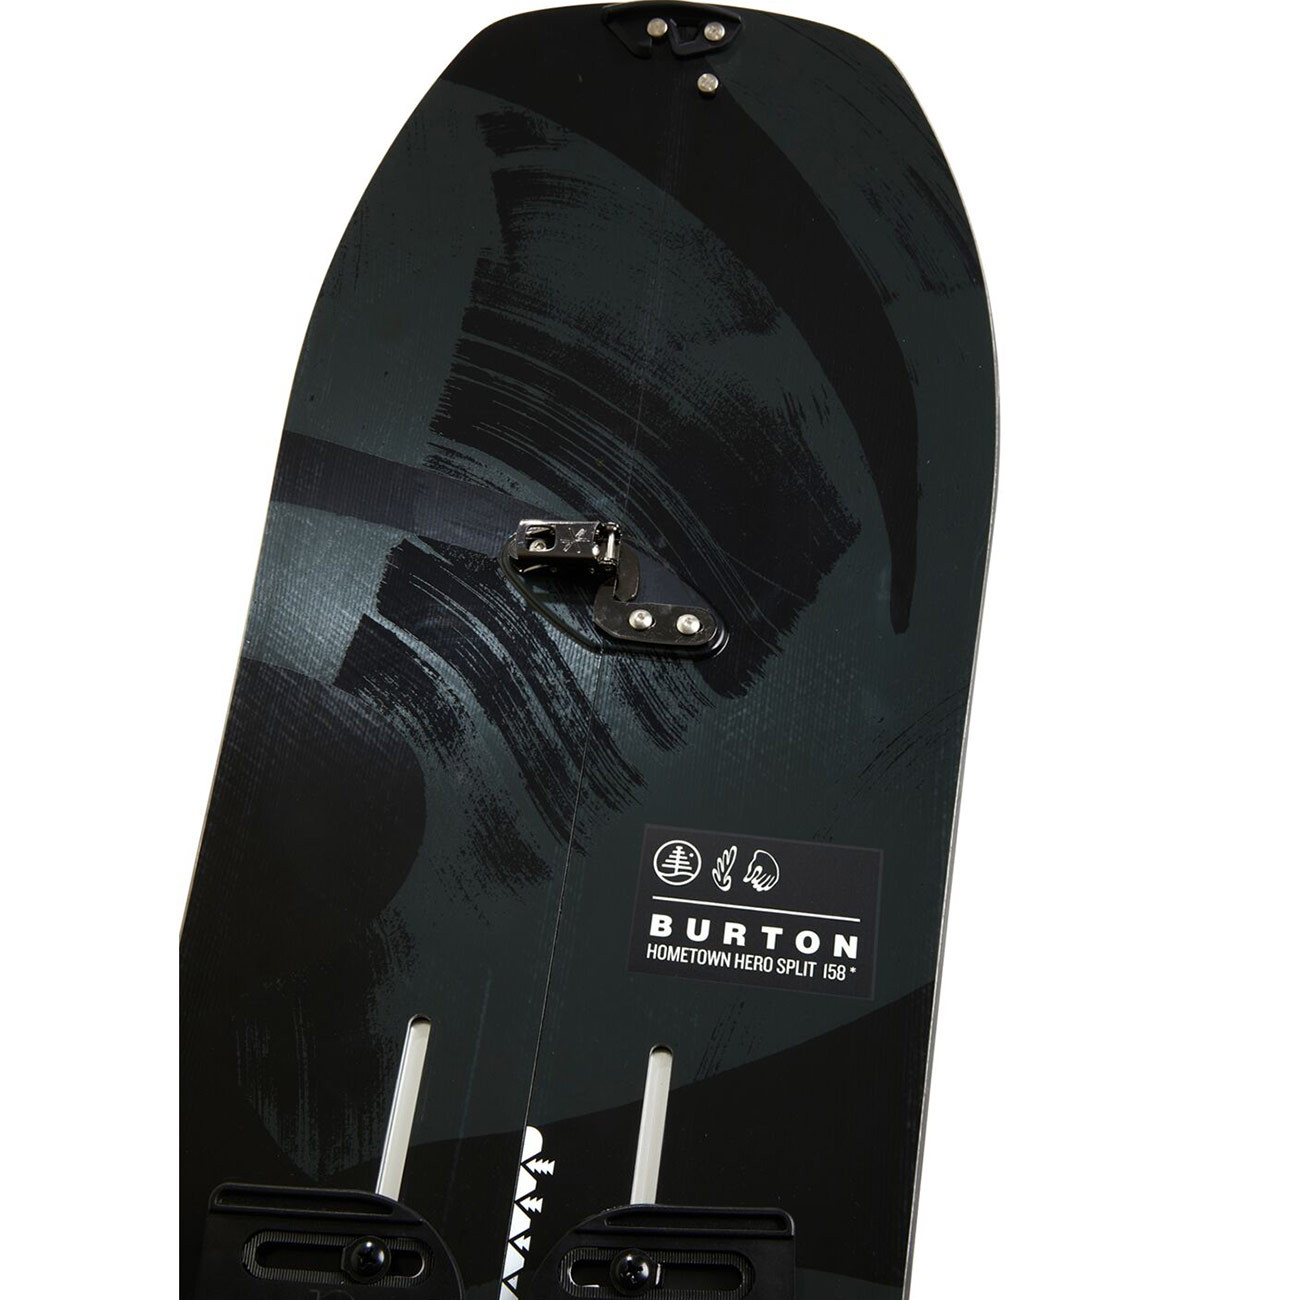 Splitboard Burton Ft Hometown Hero